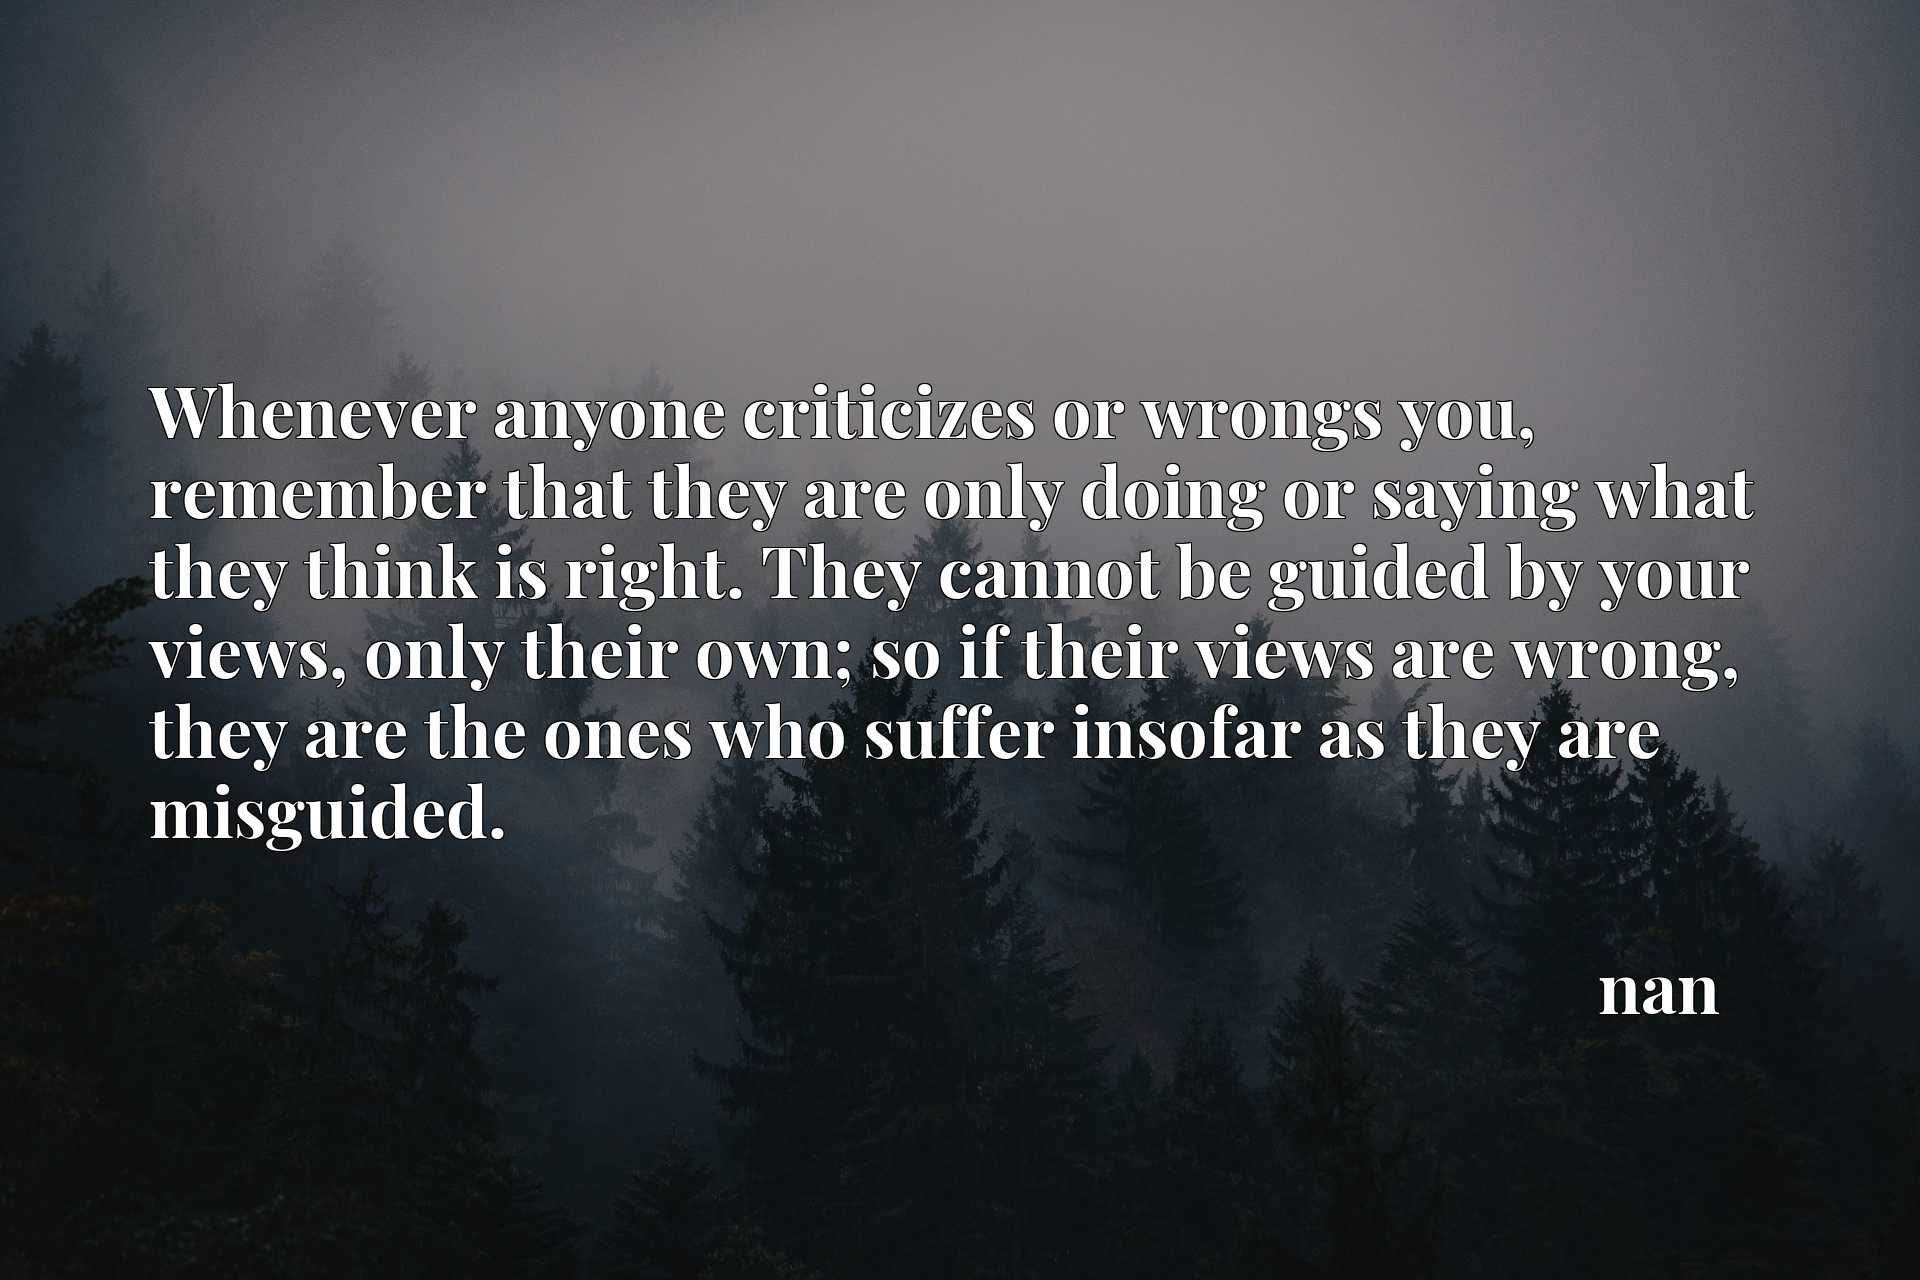 Whenever anyone criticizes or wrongs you, remember that they are only doing or saying what they think is right. They cannot be guided by your views, only their own; so if their views are wrong, they are the ones who suffer insofar as they are misguided.